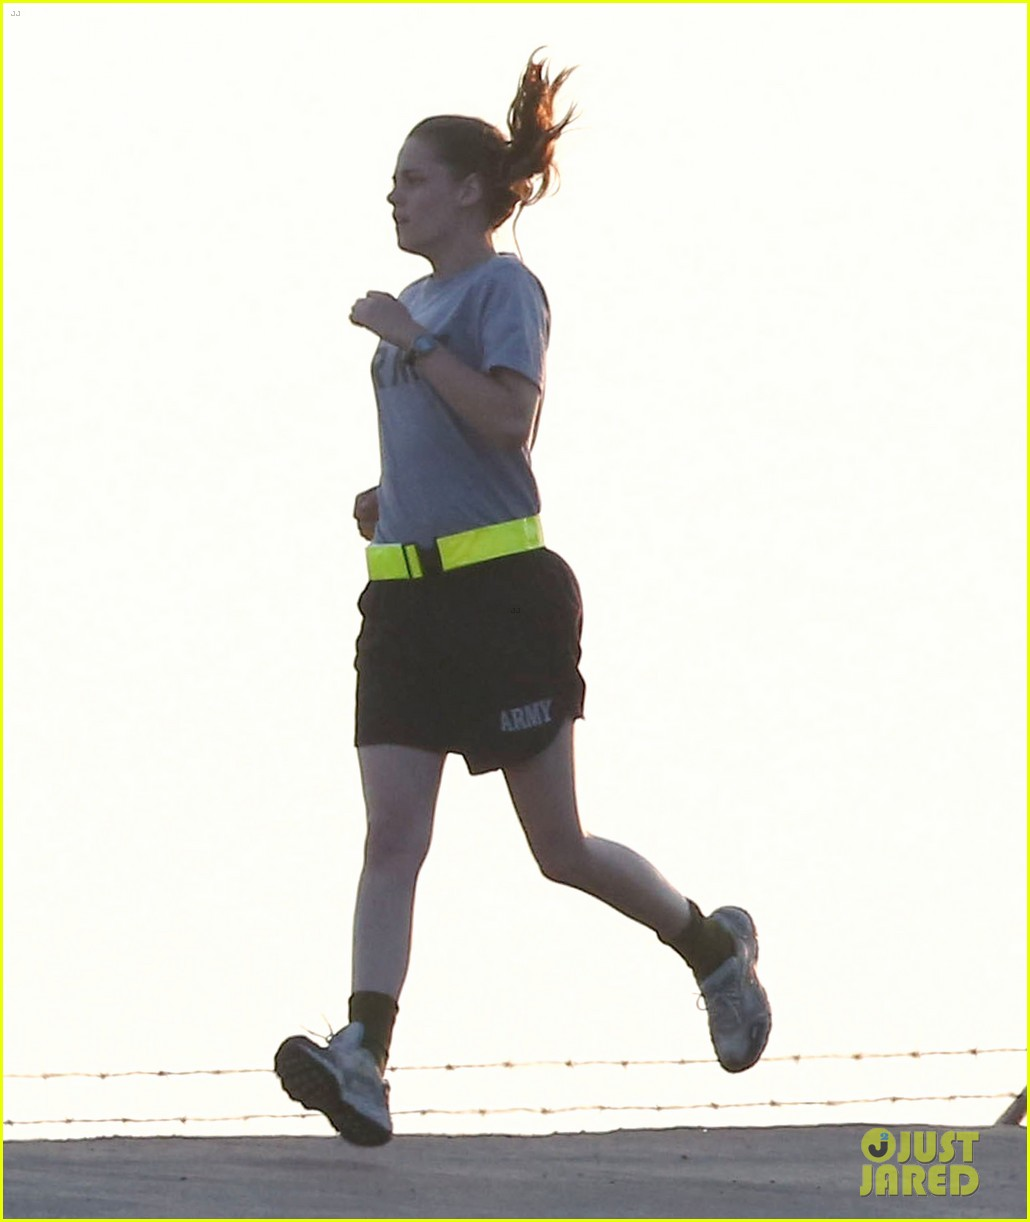 kristen stewart does army exercises for camp x ray scenes 05